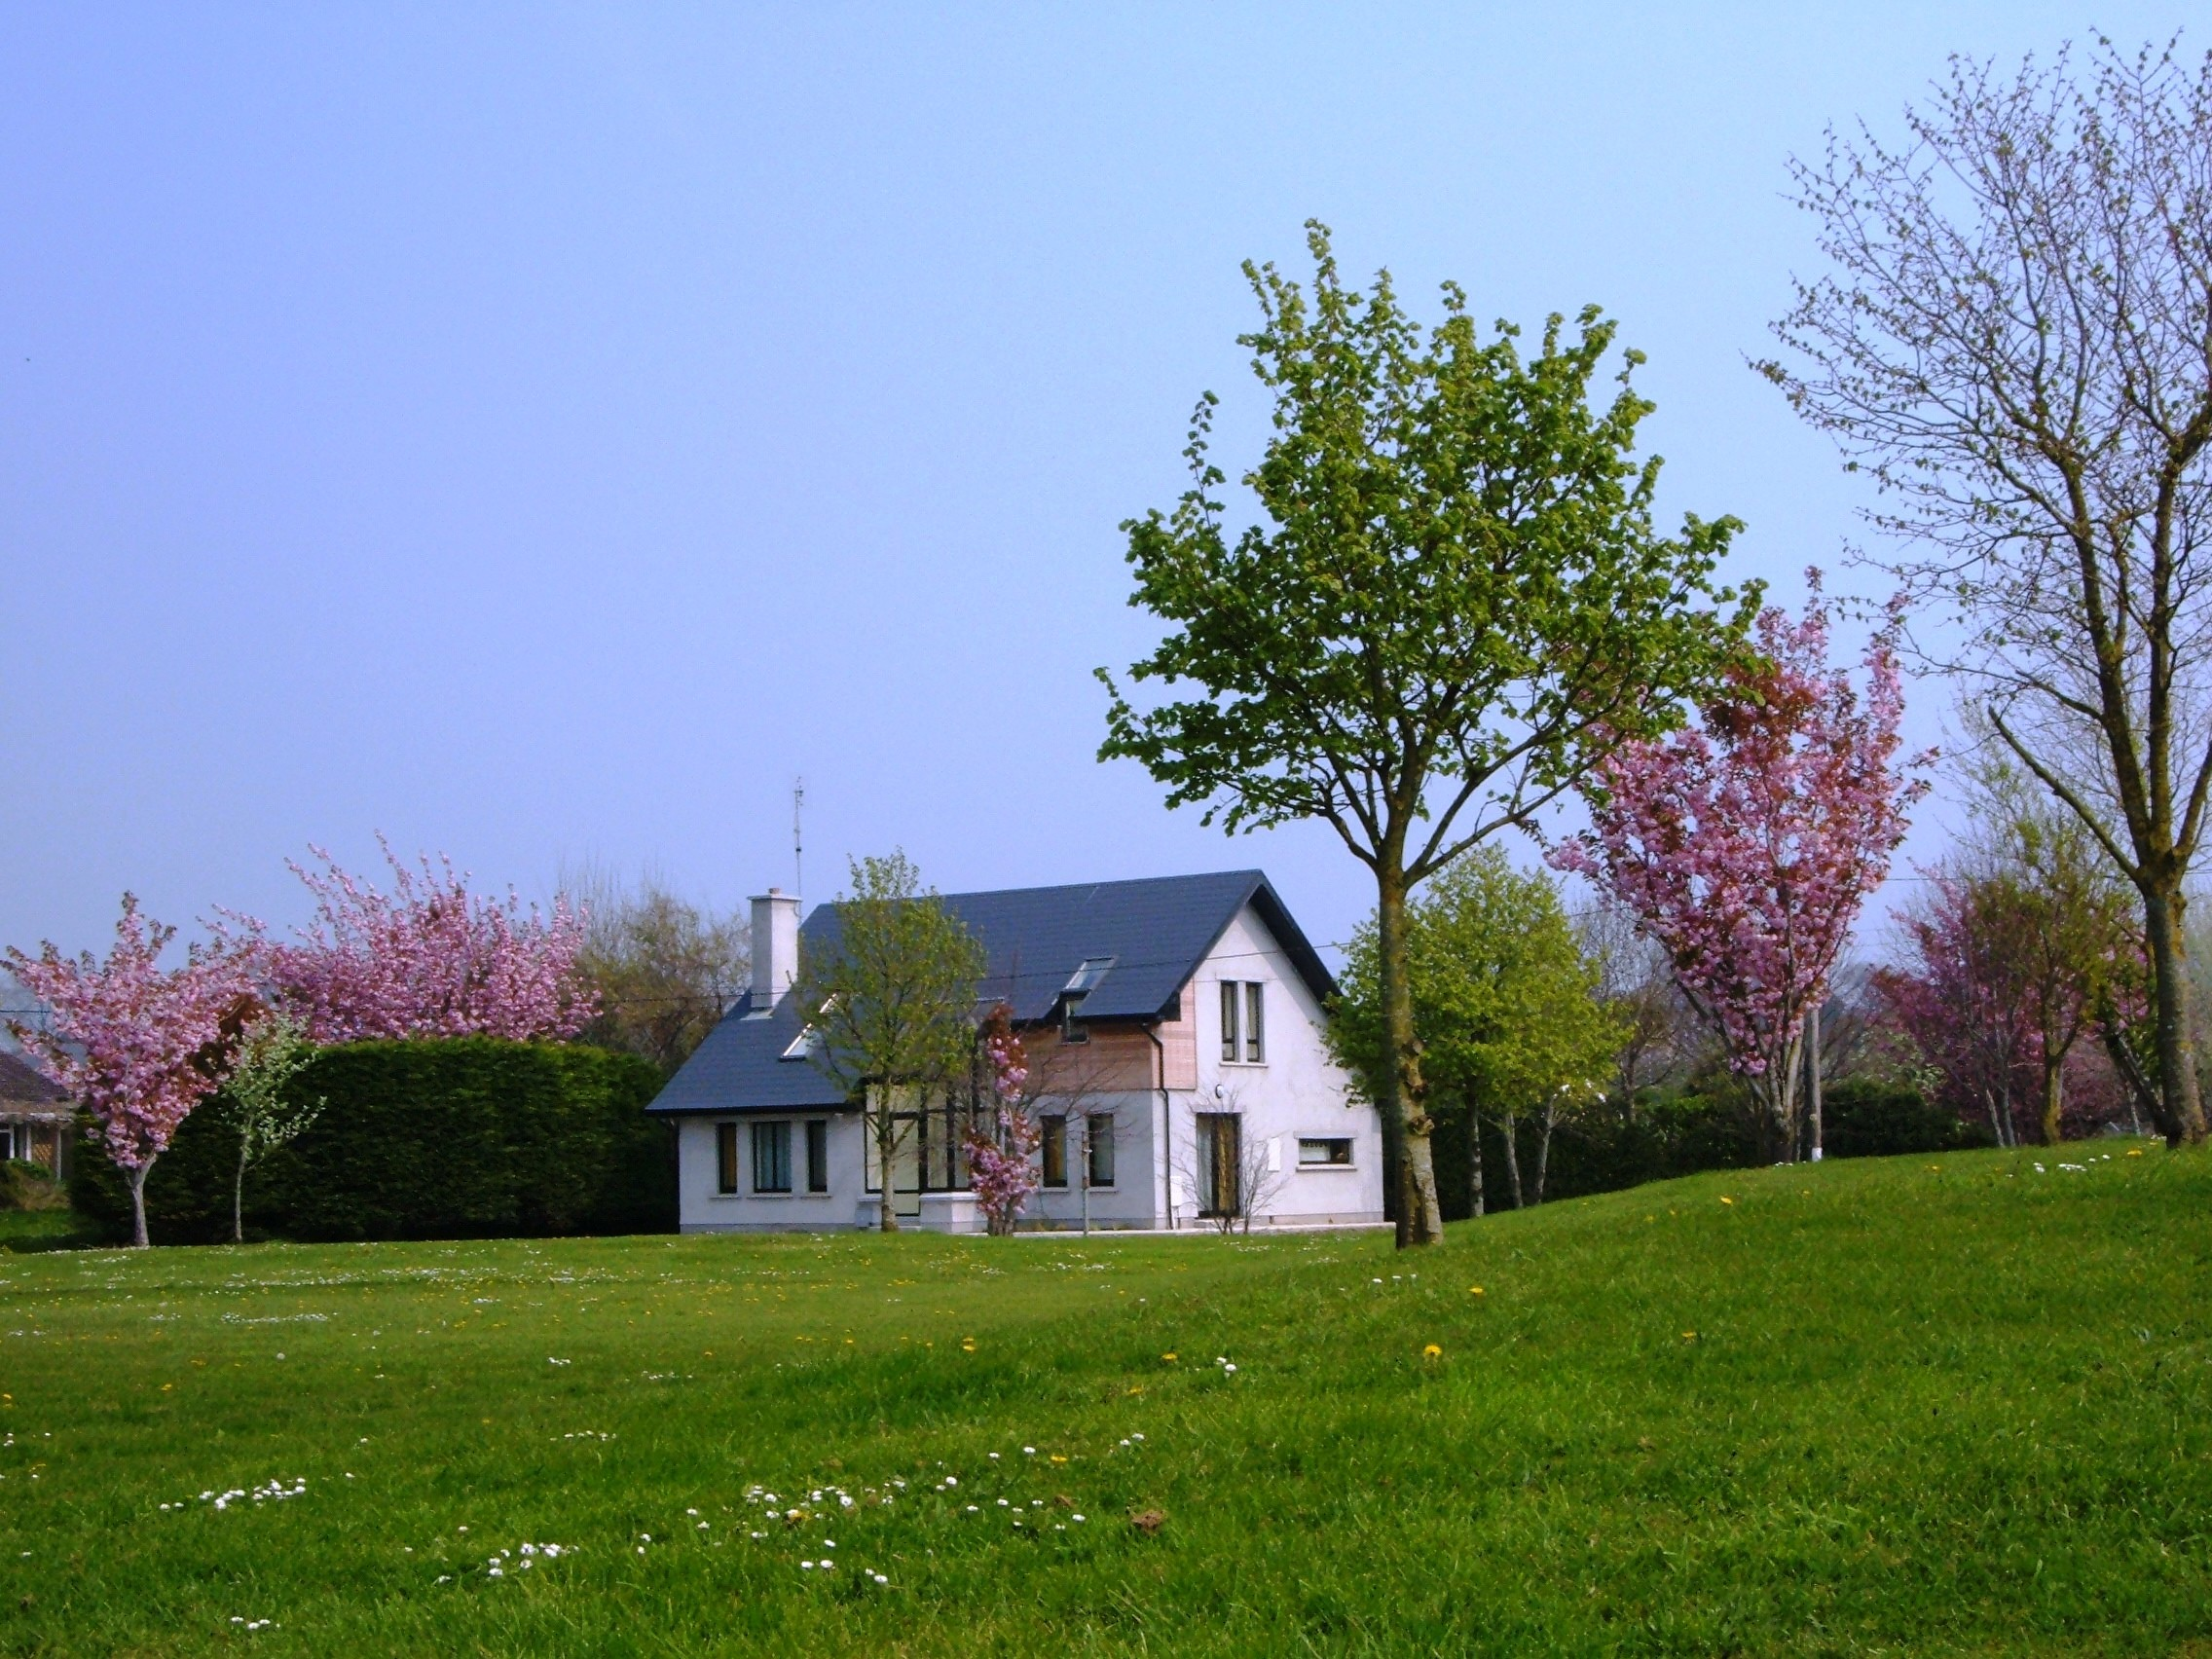 File:House And Garden